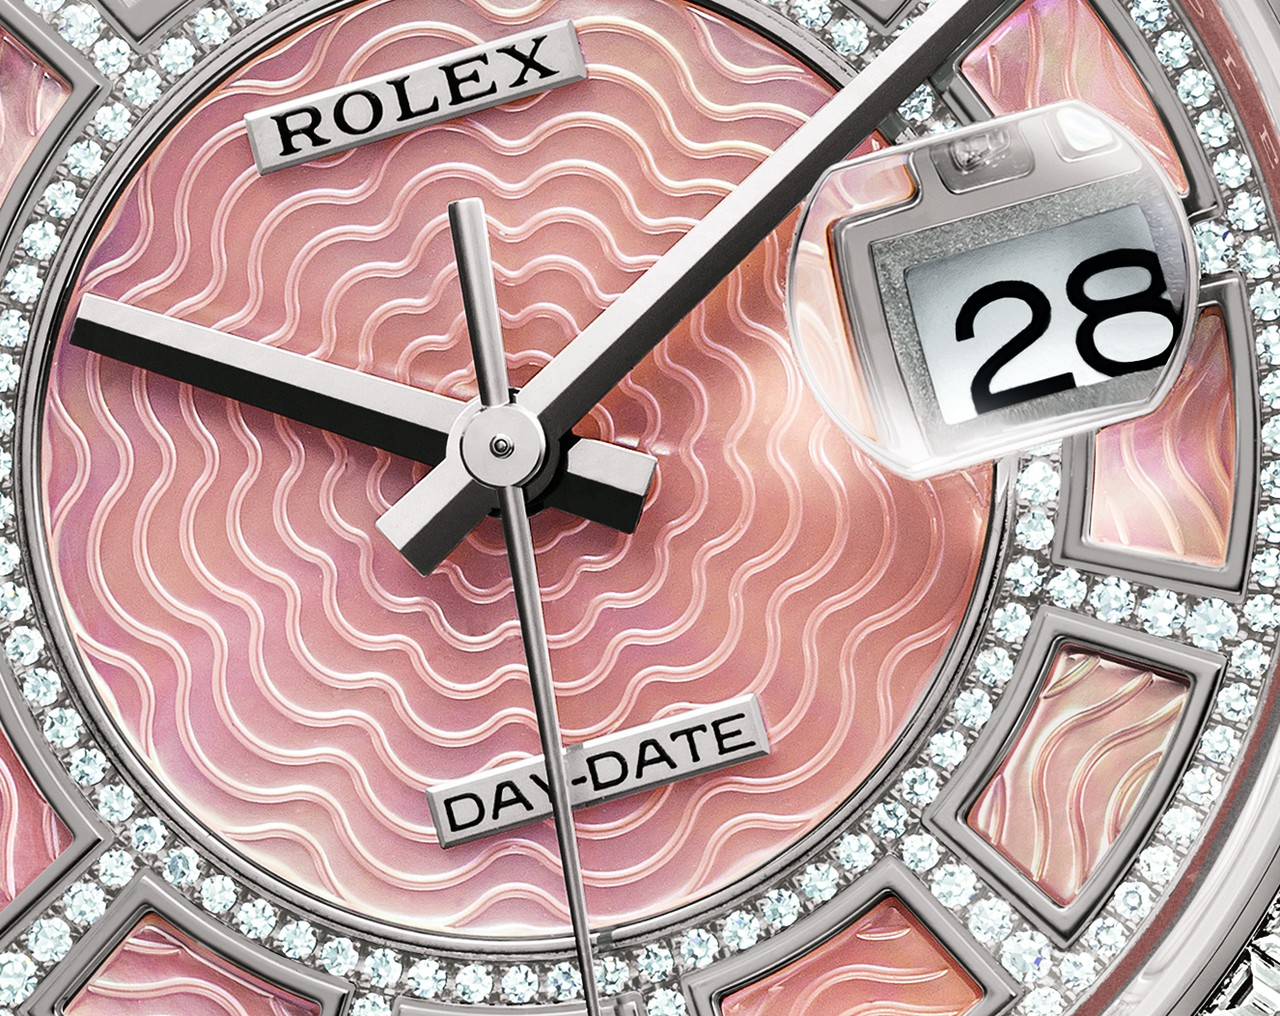 baselworld-2013-oyster-perpetual-day-date-sertie_0-100_6